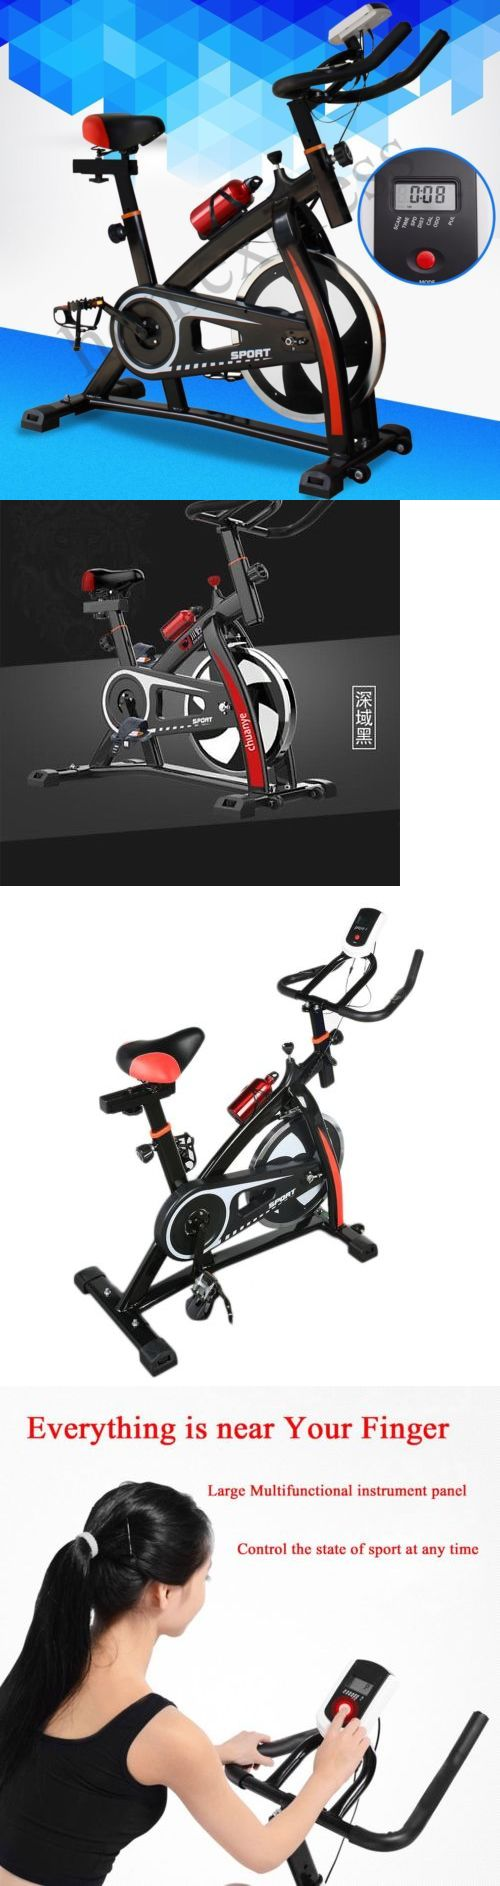 Exercise Bikes 58102: Fitness Safely Stationary Spinning Exercise Bike Cardio Indoor Cycling Bicycle O -> BUY IT NOW ONLY: $125.85 on eBay!